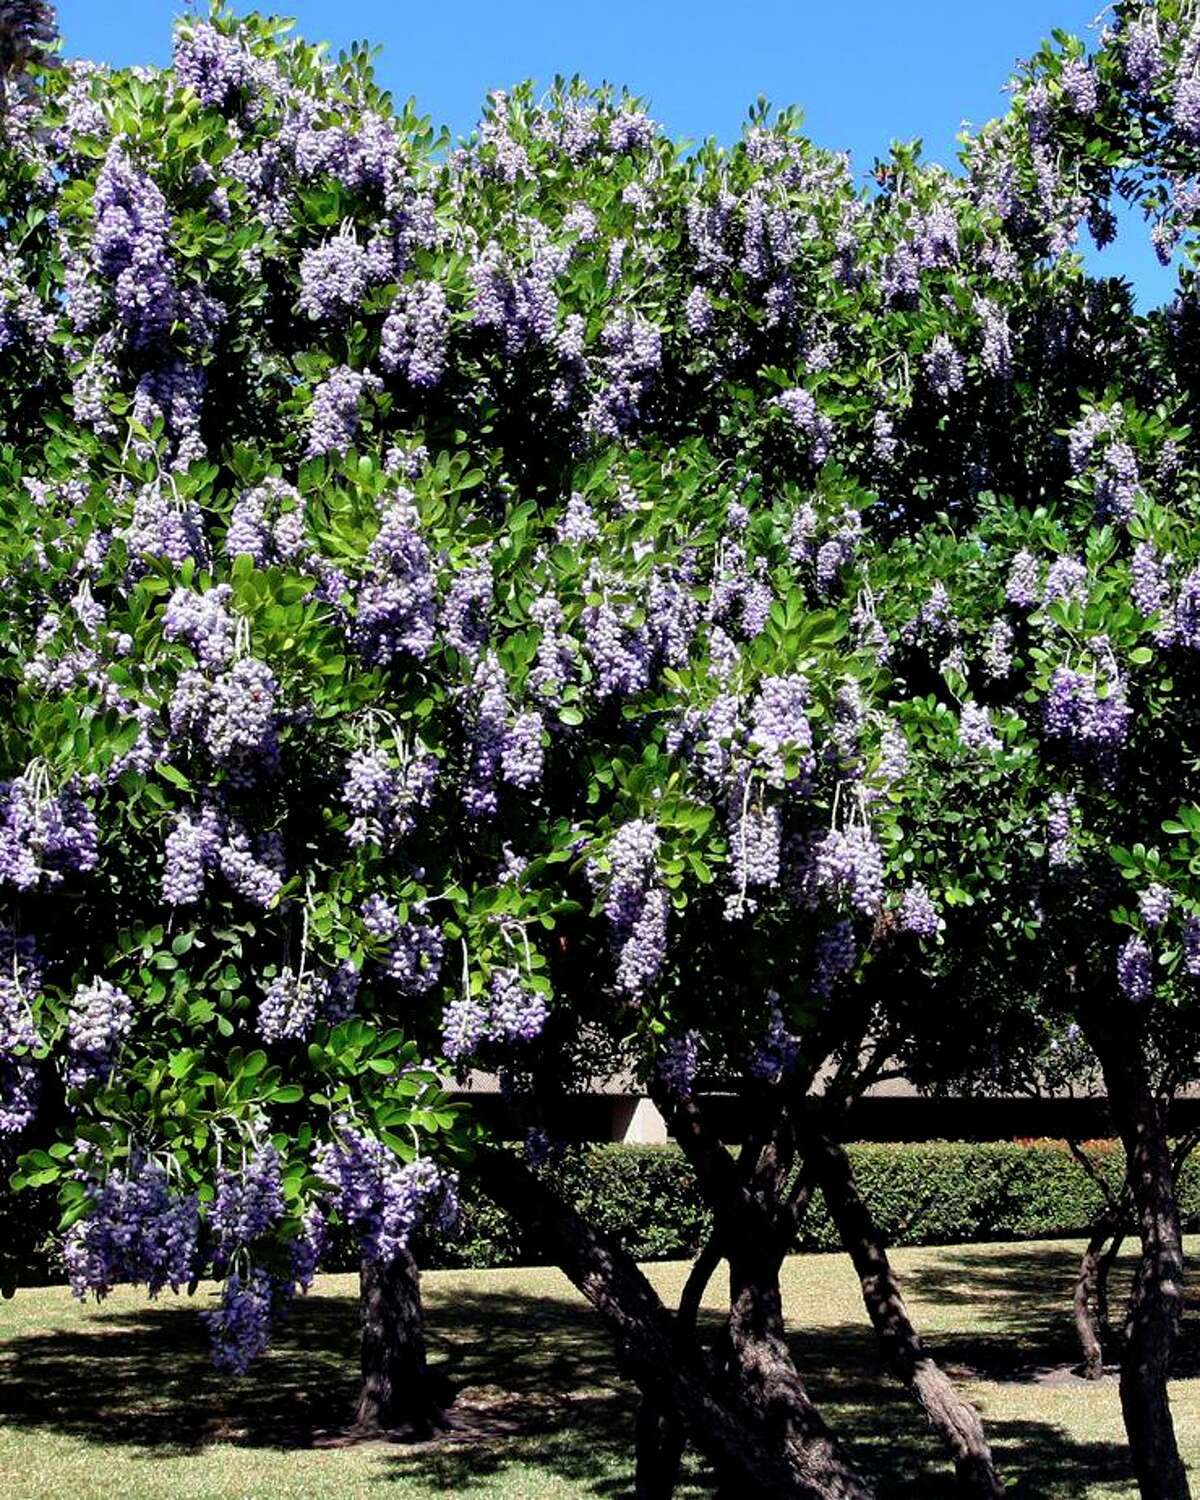 Texas mountain laurel didn't bloom this year because of the freeze, but it should bloom again next year.